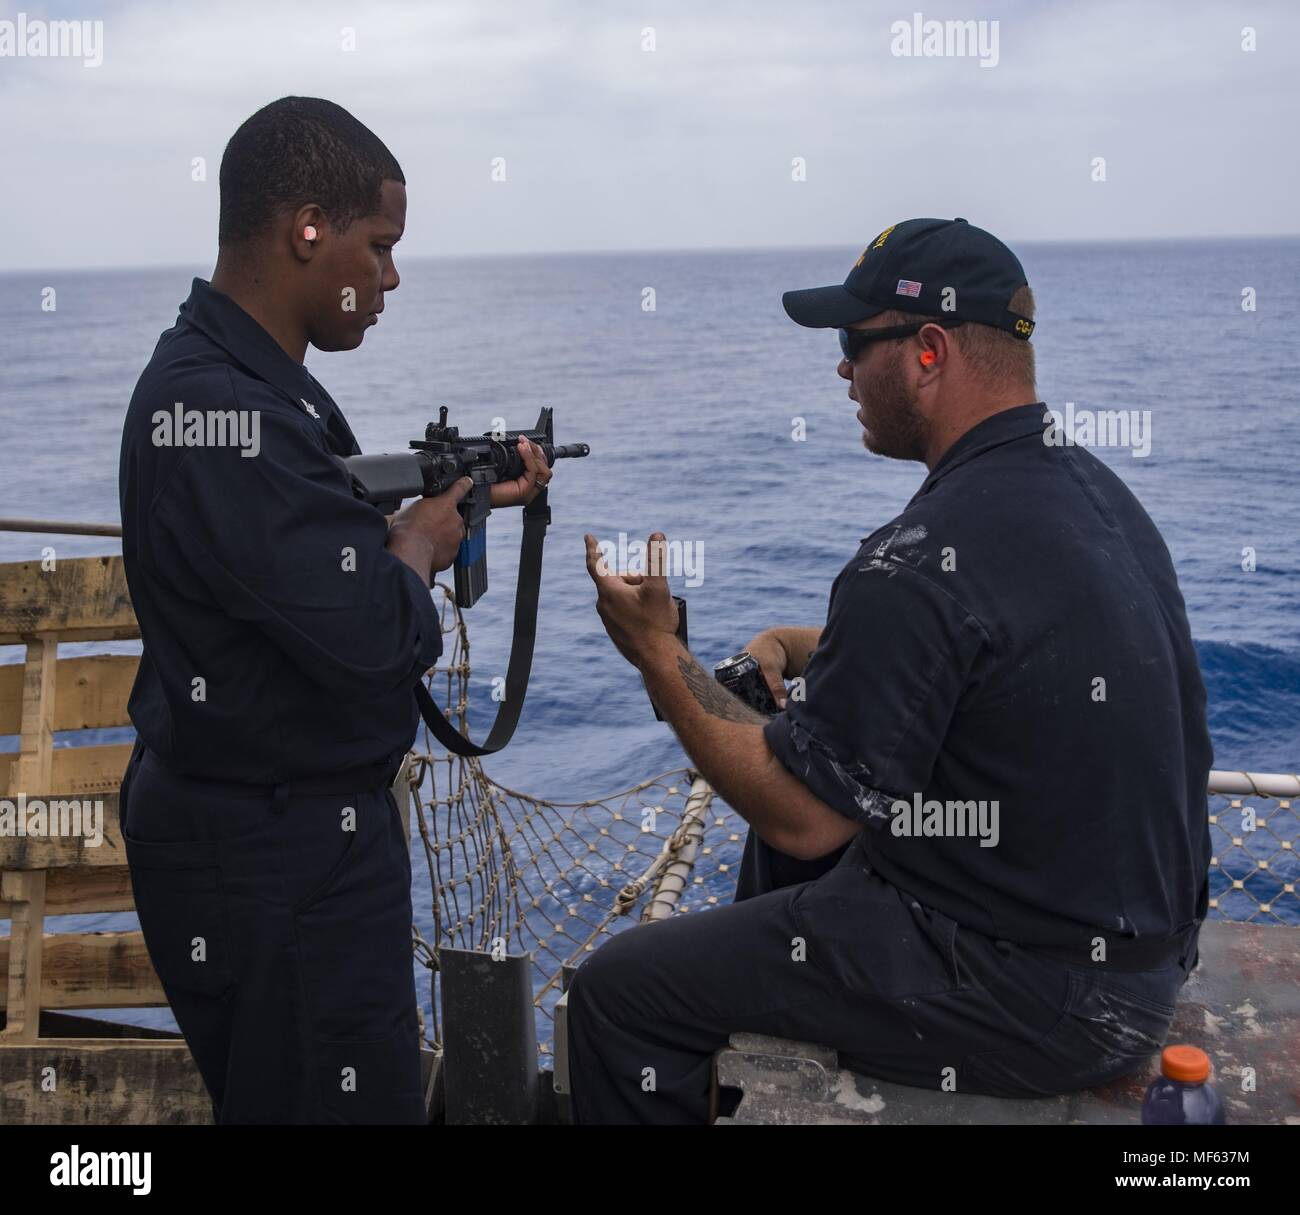 180418-N-DO281-0163 MEDITERRANEAN SEA (April 18, 2018) Gunner's Mate 3rd Class Tyler Aughtman, right, gives training to Cryptologic Technician (Technical) 2nd Class Alexis Grassettesantos, left, on the proper way to fire a M-16 rifle during a live-fire exercise aboard the guided-missile cruiser USS Monterey (CG 61), April 18, 2018. Monterey, home-ported in Norfolk, Virginia, is conducting operations in the U.S. 6th Fleet area of operations in support of U.S. national security interest in Europe. (U.S. Navy photo by Mass Communication Specialist Seaman Trey Fowler). () Stock Photo